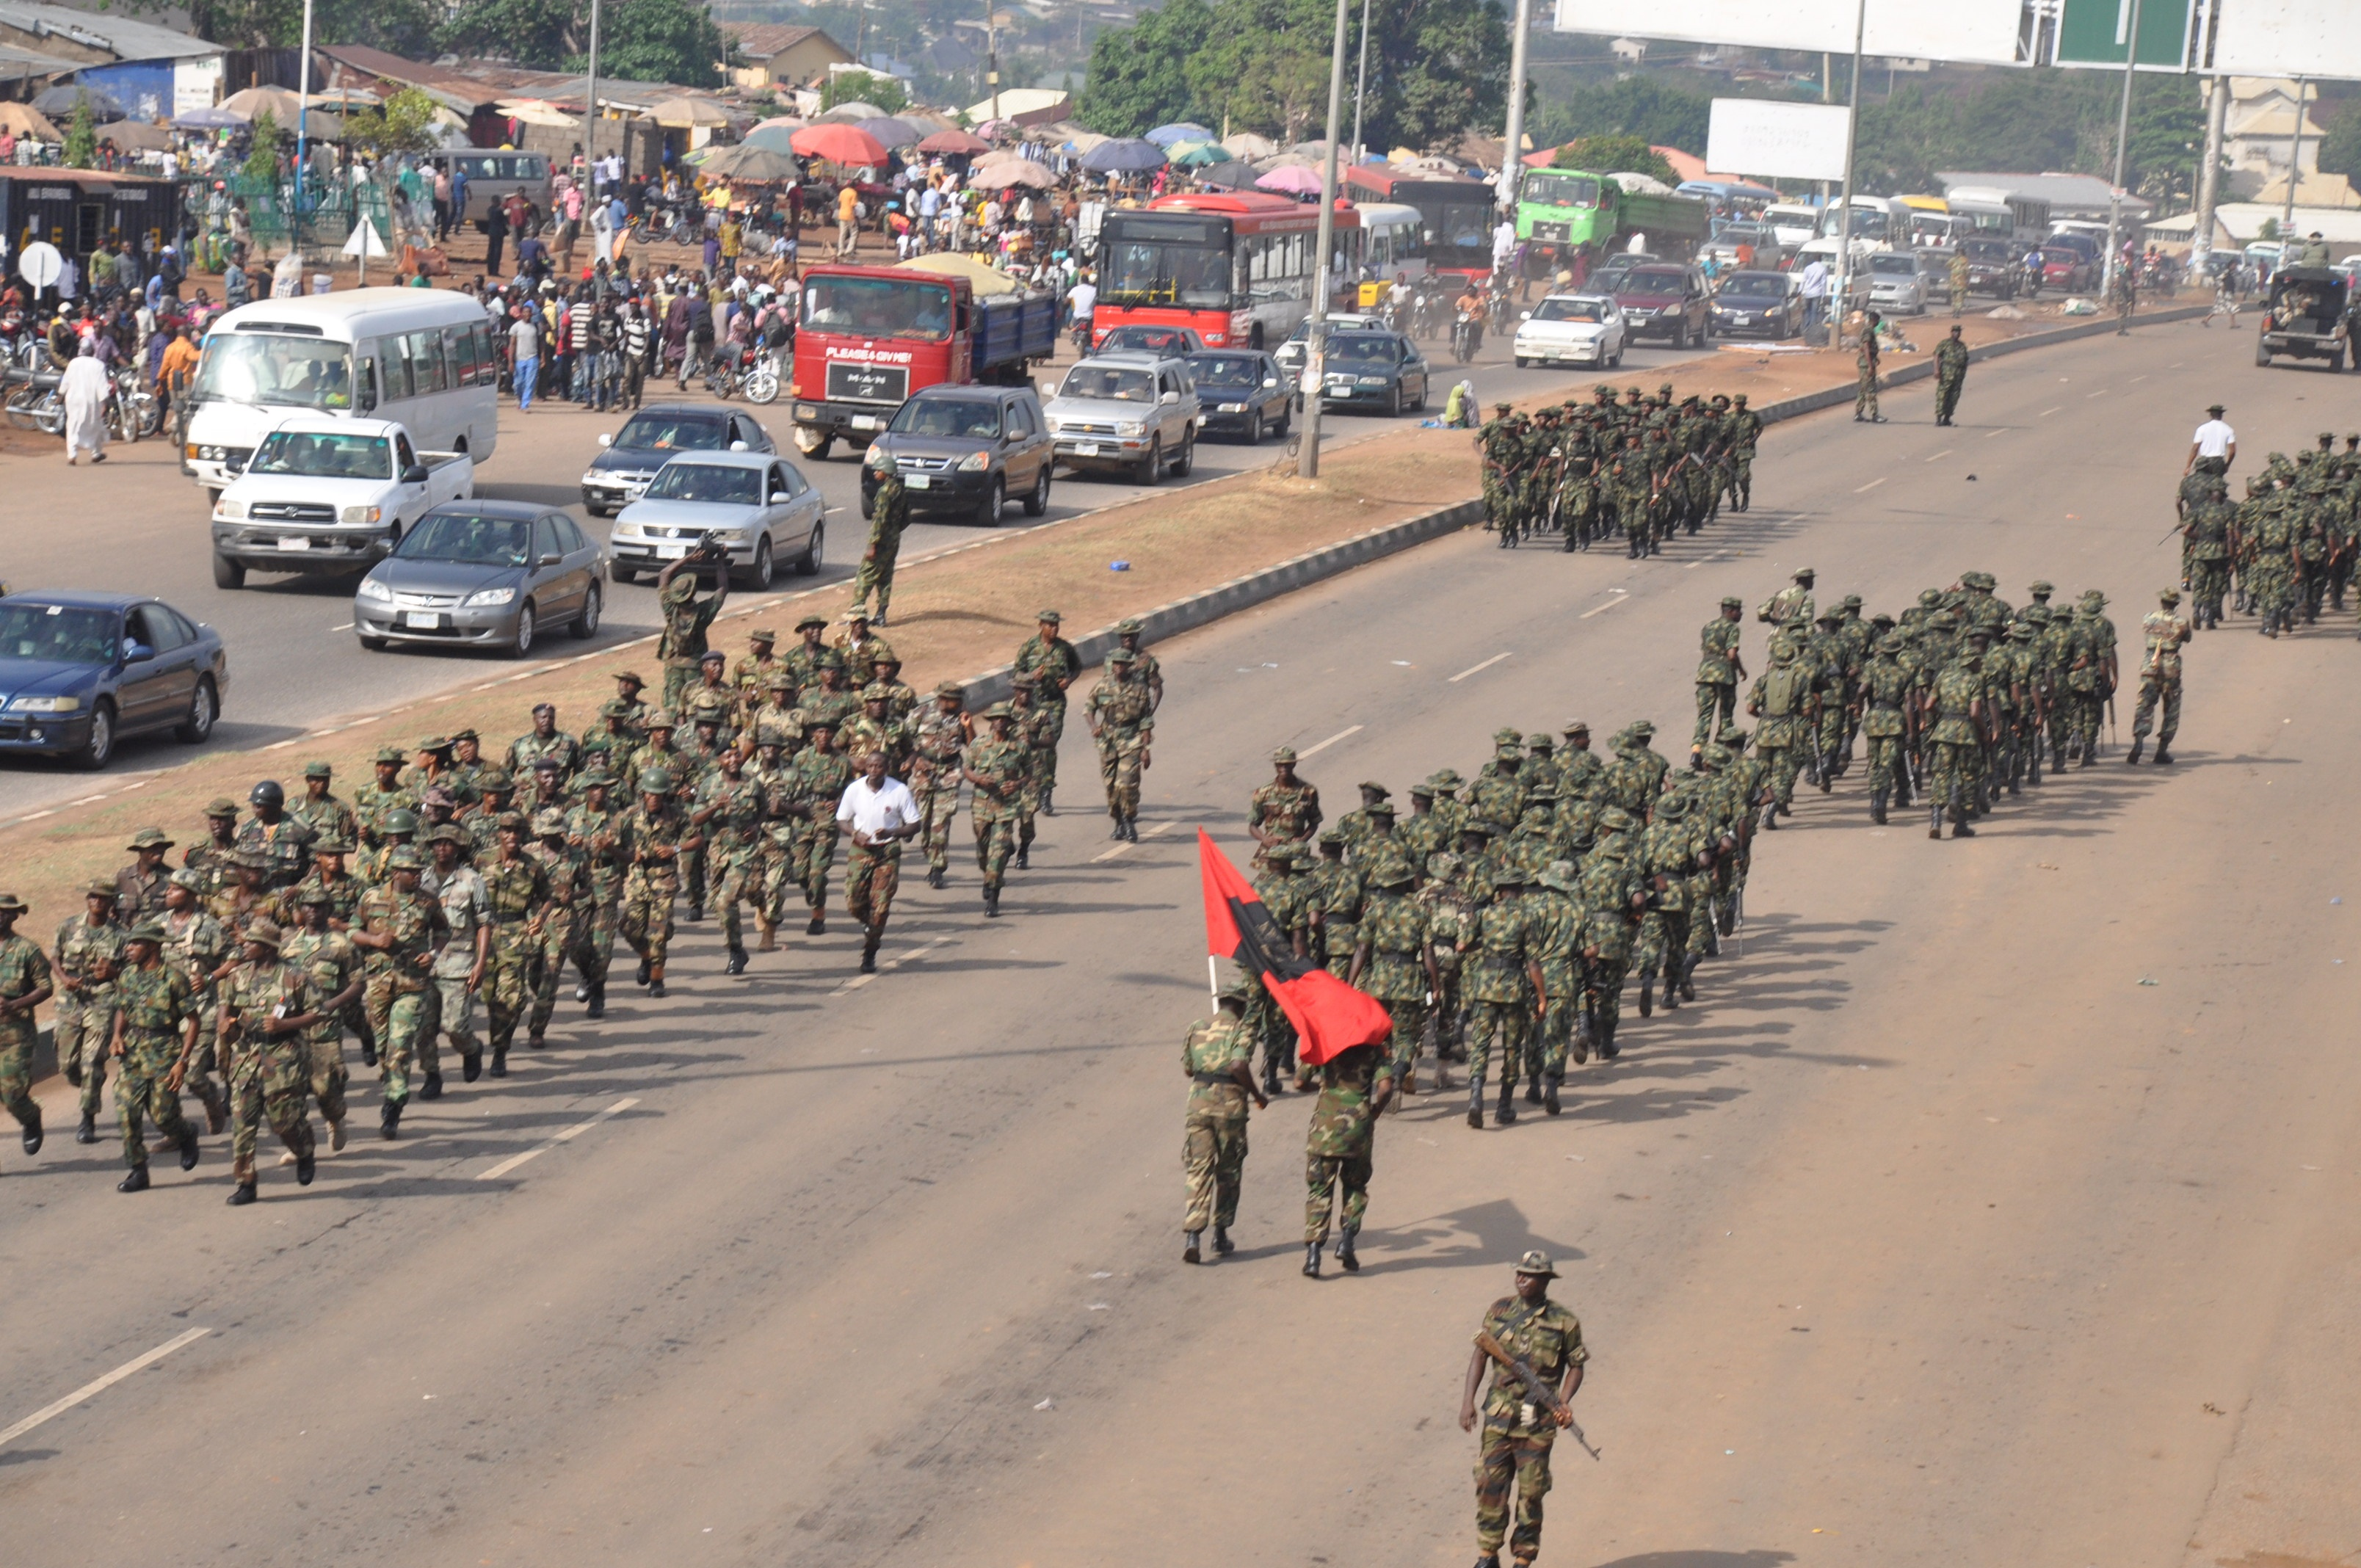 Nigeria armed forces performing show of force in Nyanya Abuja 26 March 2015